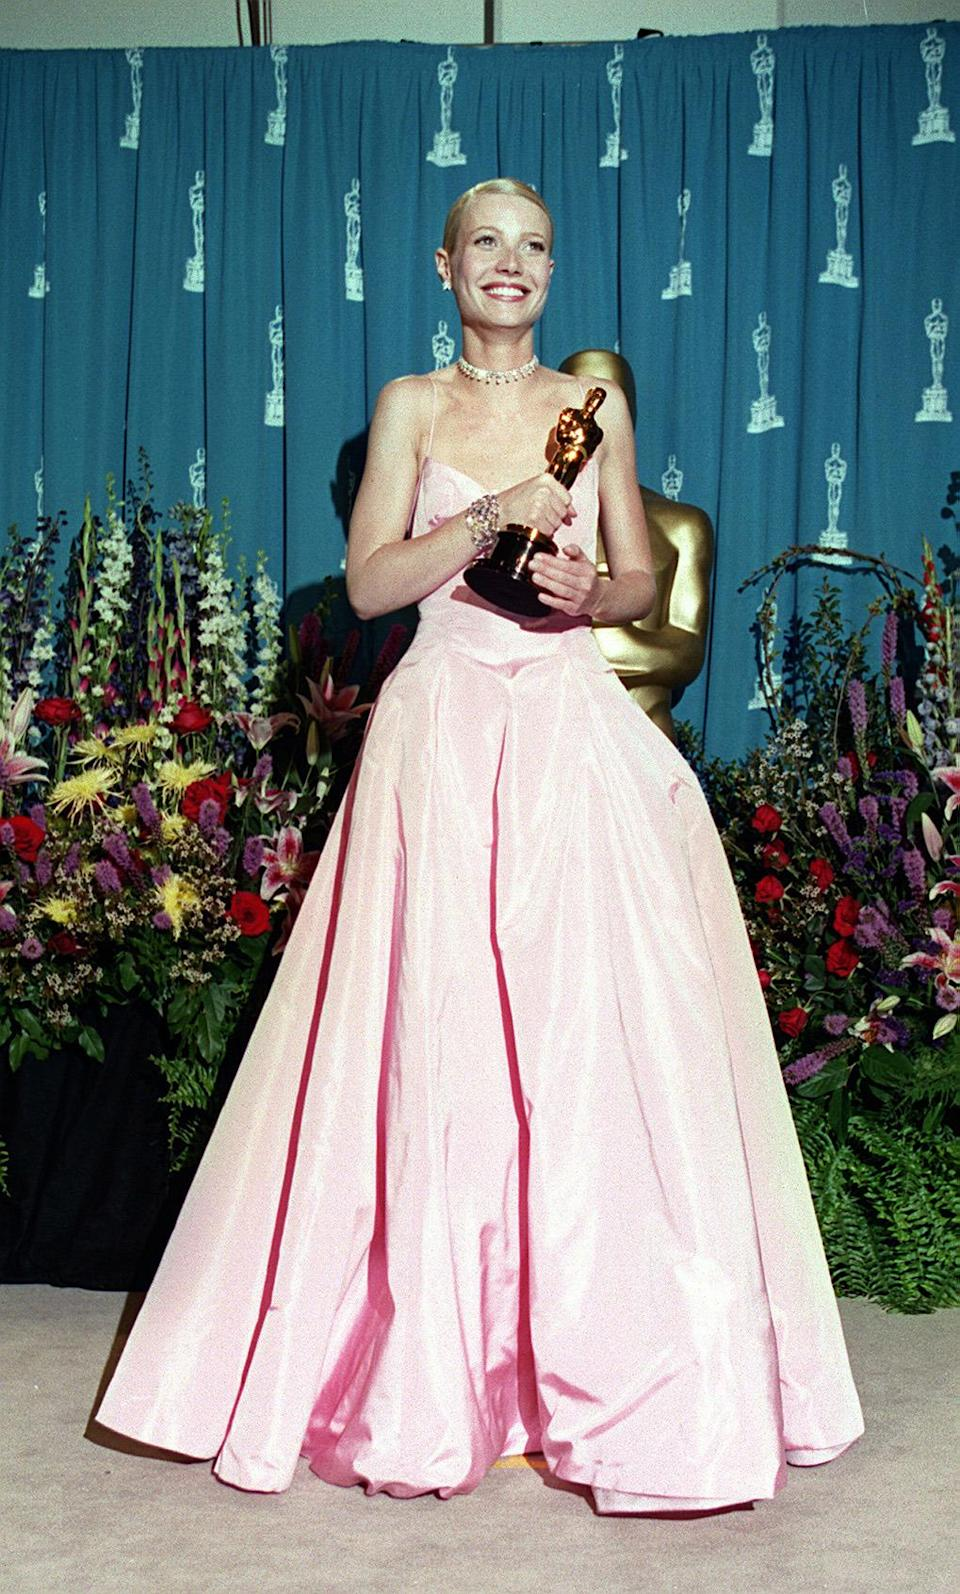 <p>The dress that divided the nation in 1999. Was Gwyneth's pink Ralph Lauren dress a sweet, appropriate dress for a young actress picking up her first Oscar, or an ill-fitting, wrinkled prom queen nightmare? The debate rages on. (Photo: PA) </p>